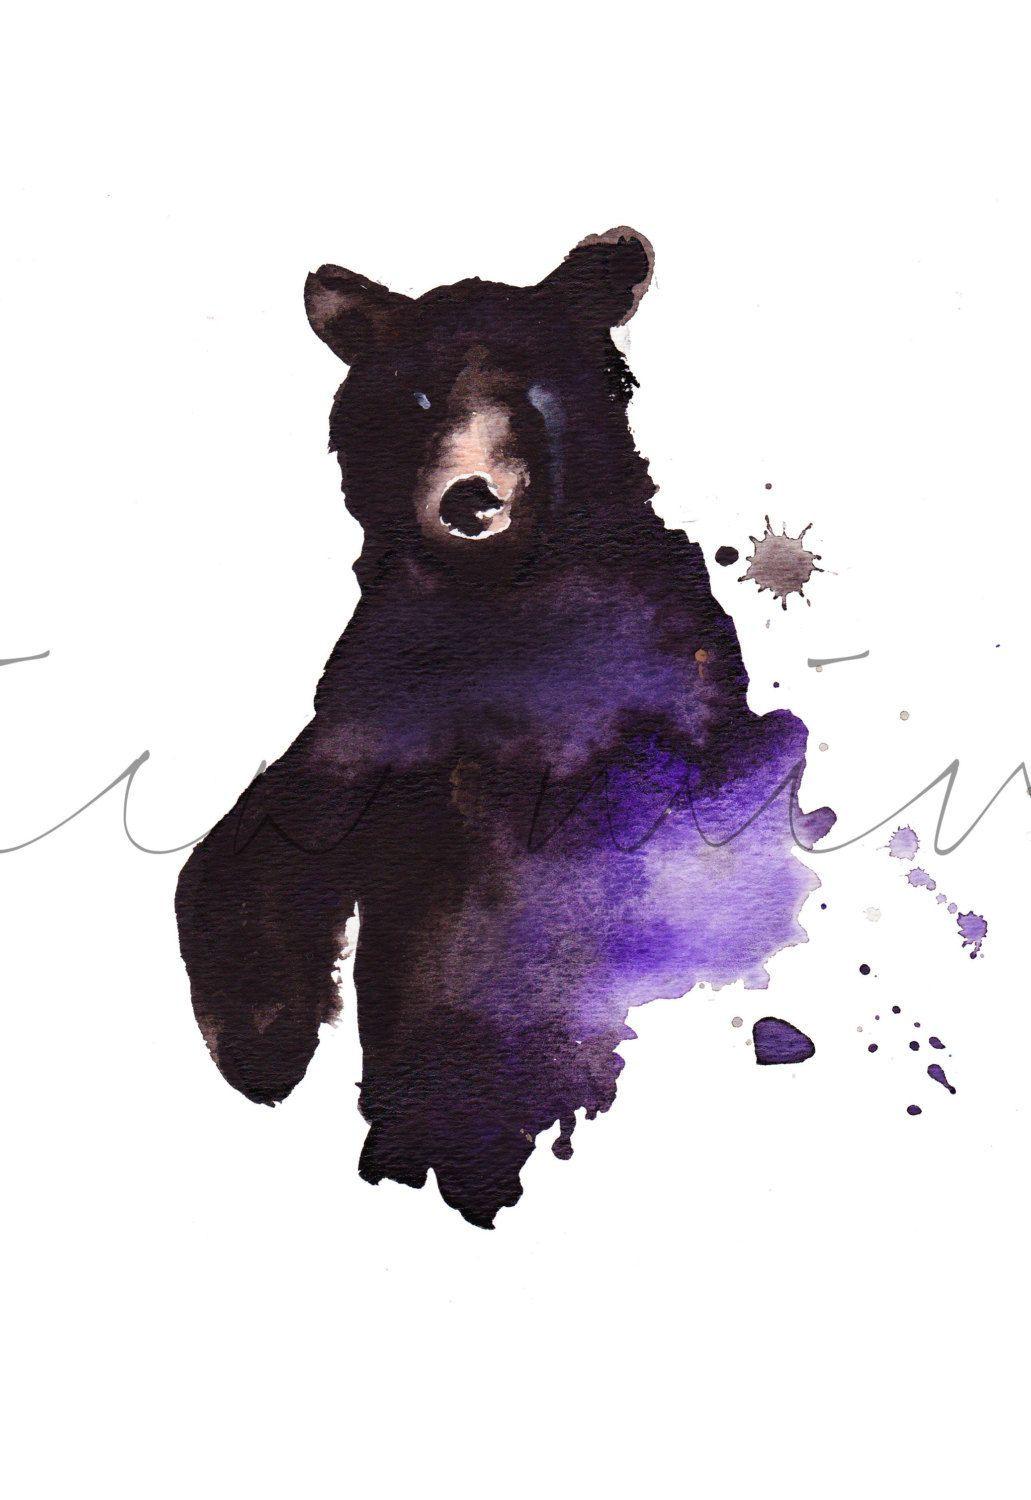 1031x1500 Black Water Bear, Black Bear Painting, Watercolor Bear, Statement